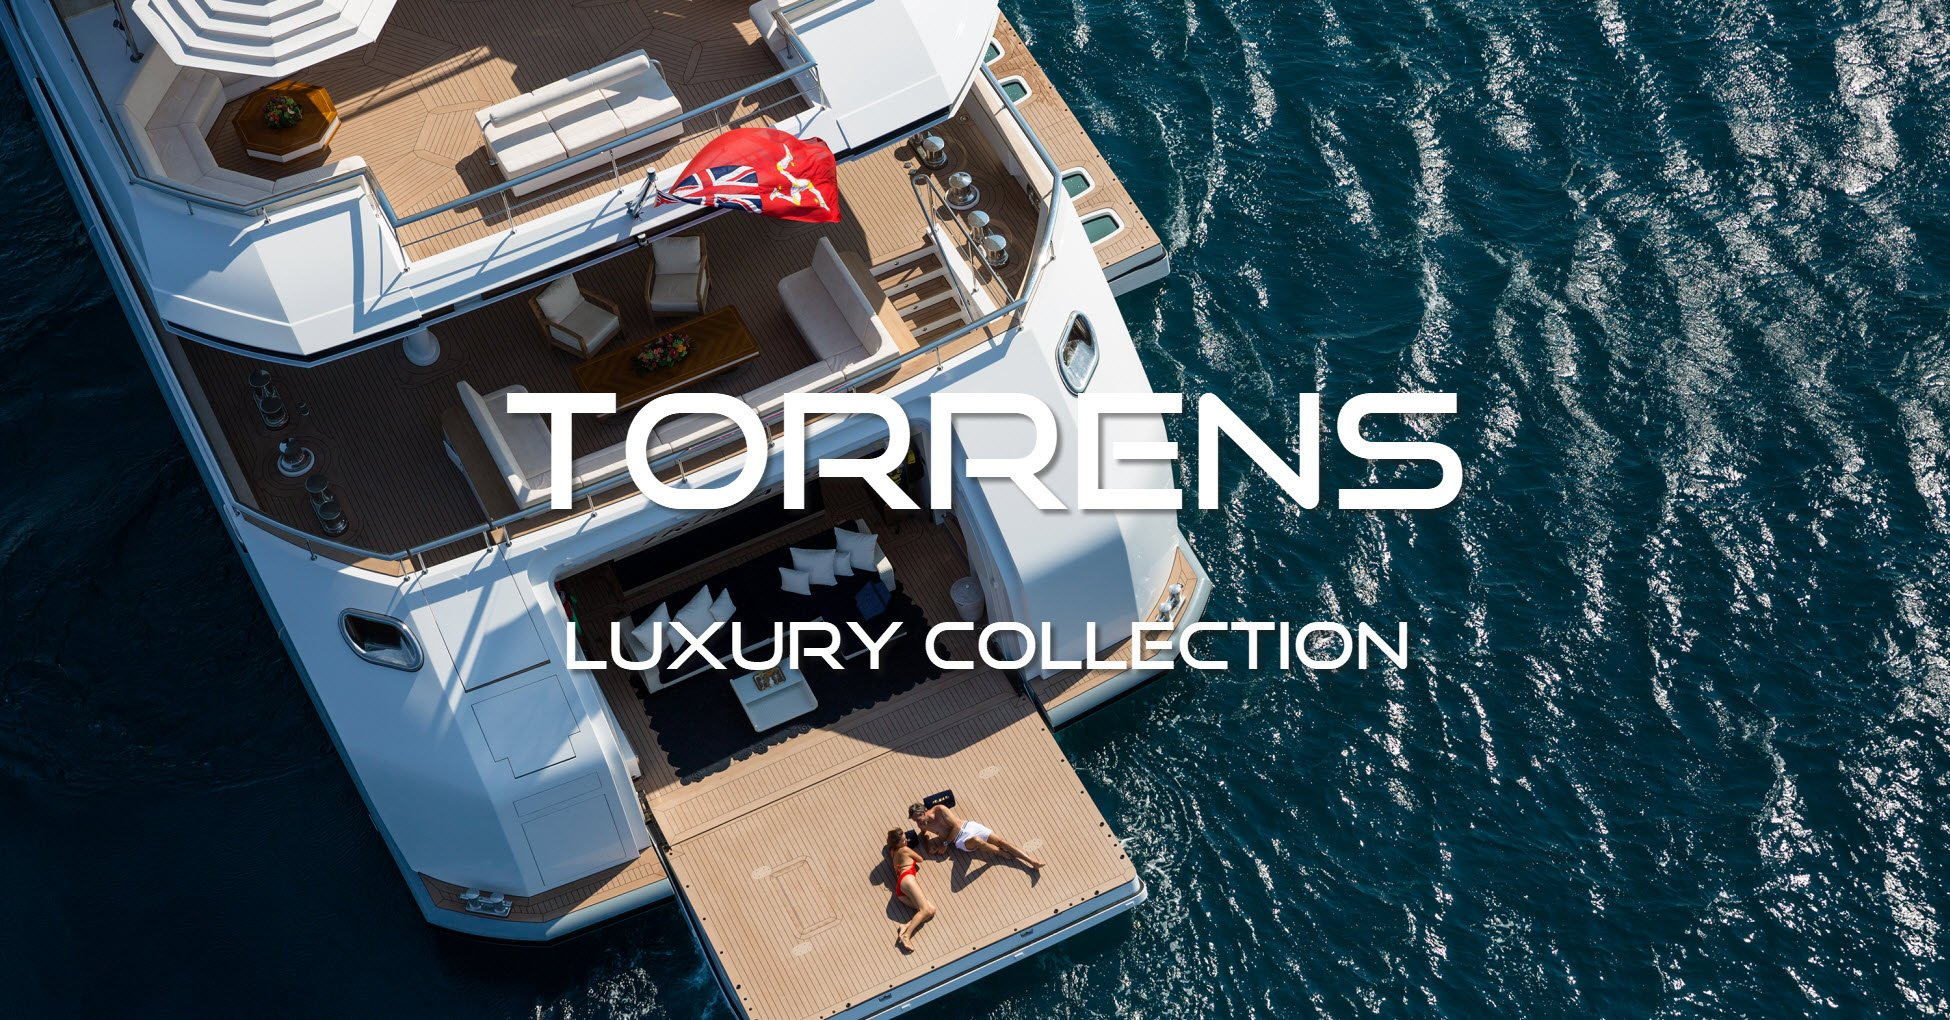 Torrens Luxury Collection logo